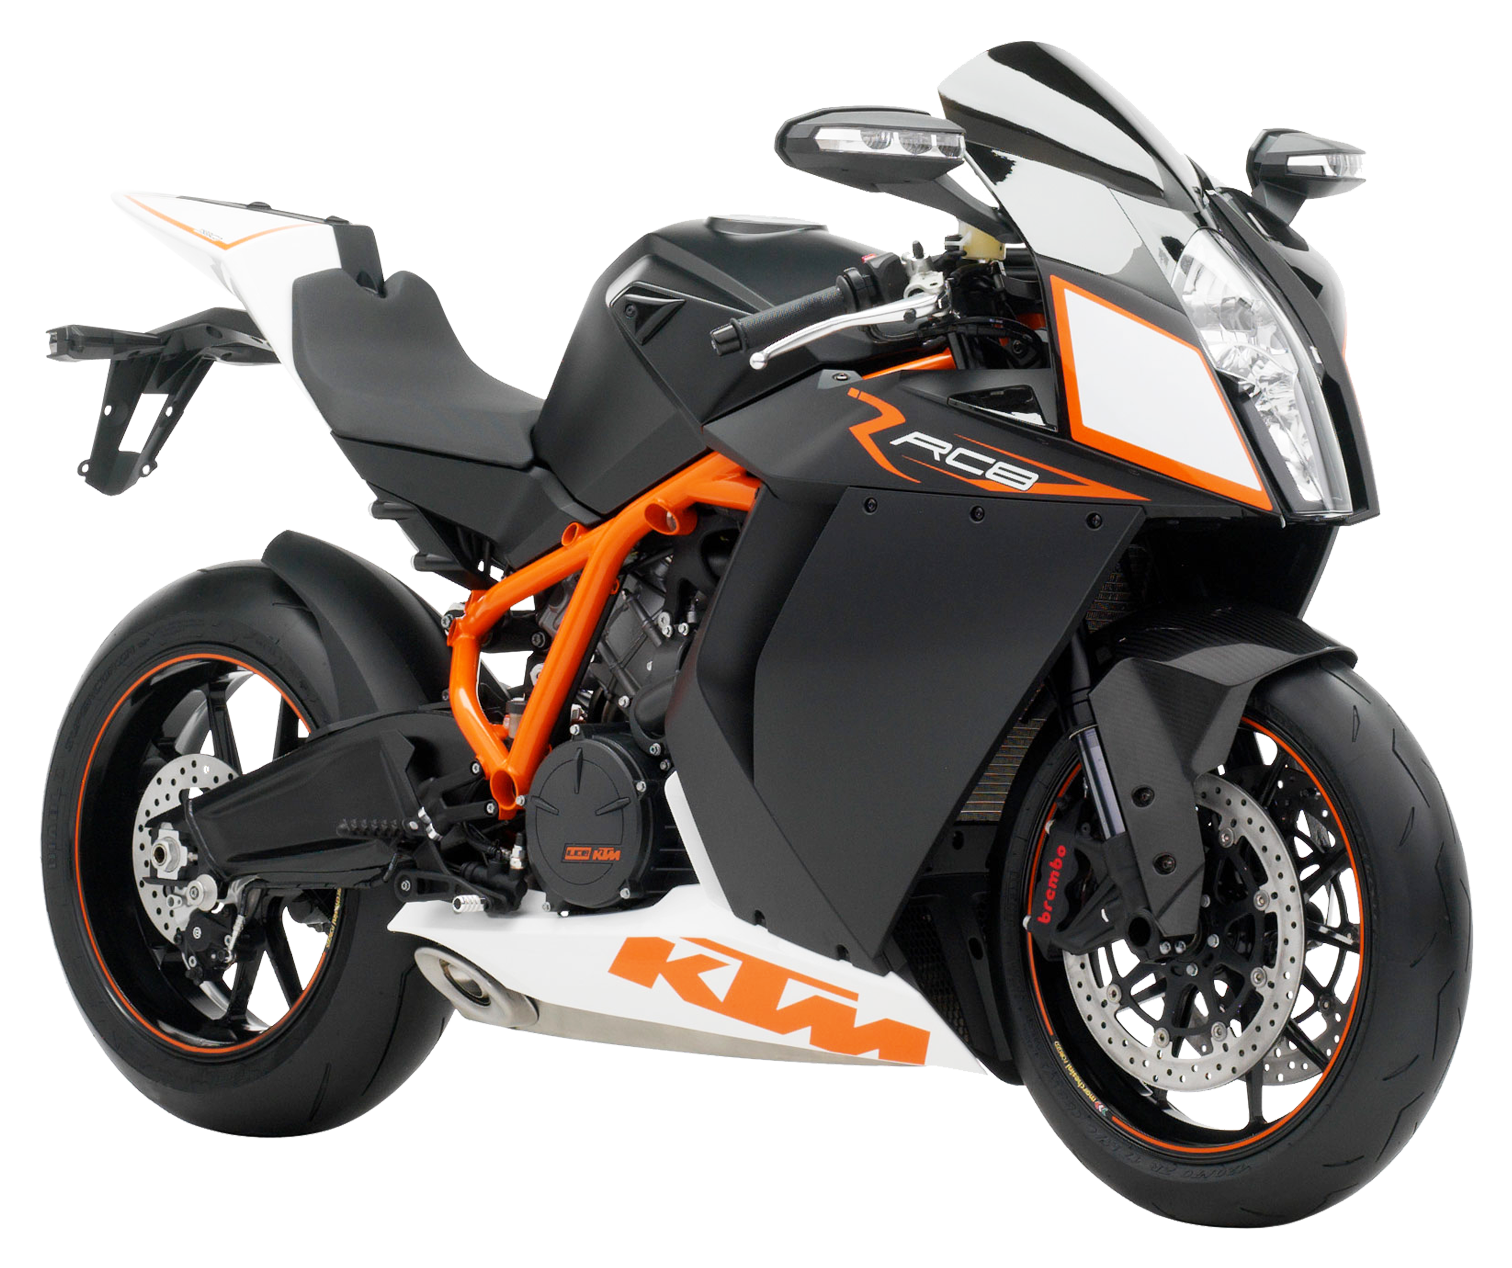 Ktm rc bike png. Motorcycle clipart sport motorcycle